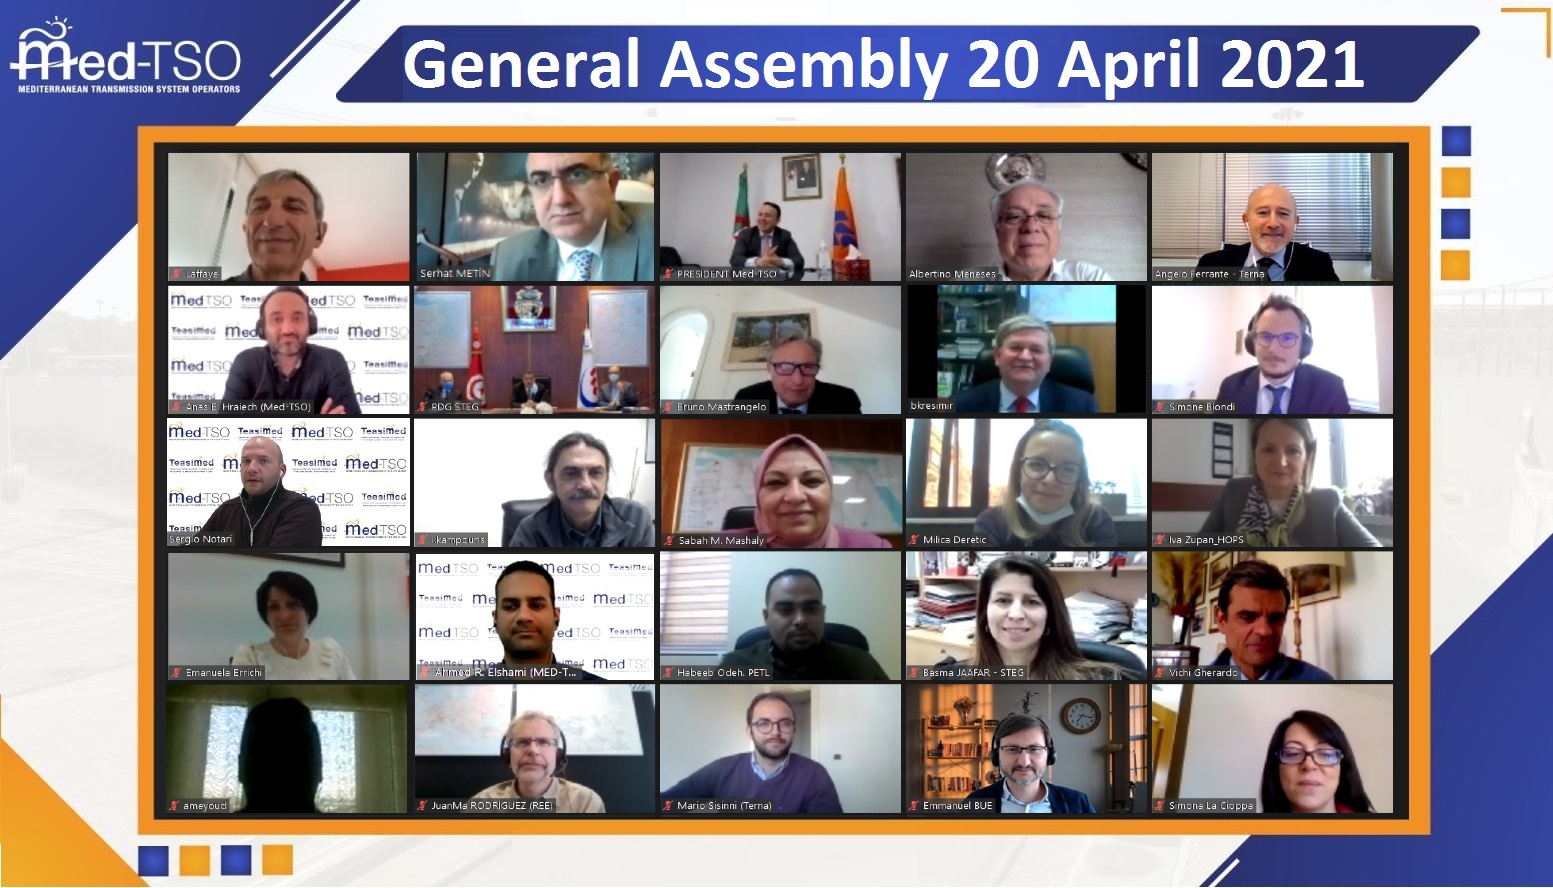 22nd General Assembly of Med-TSO